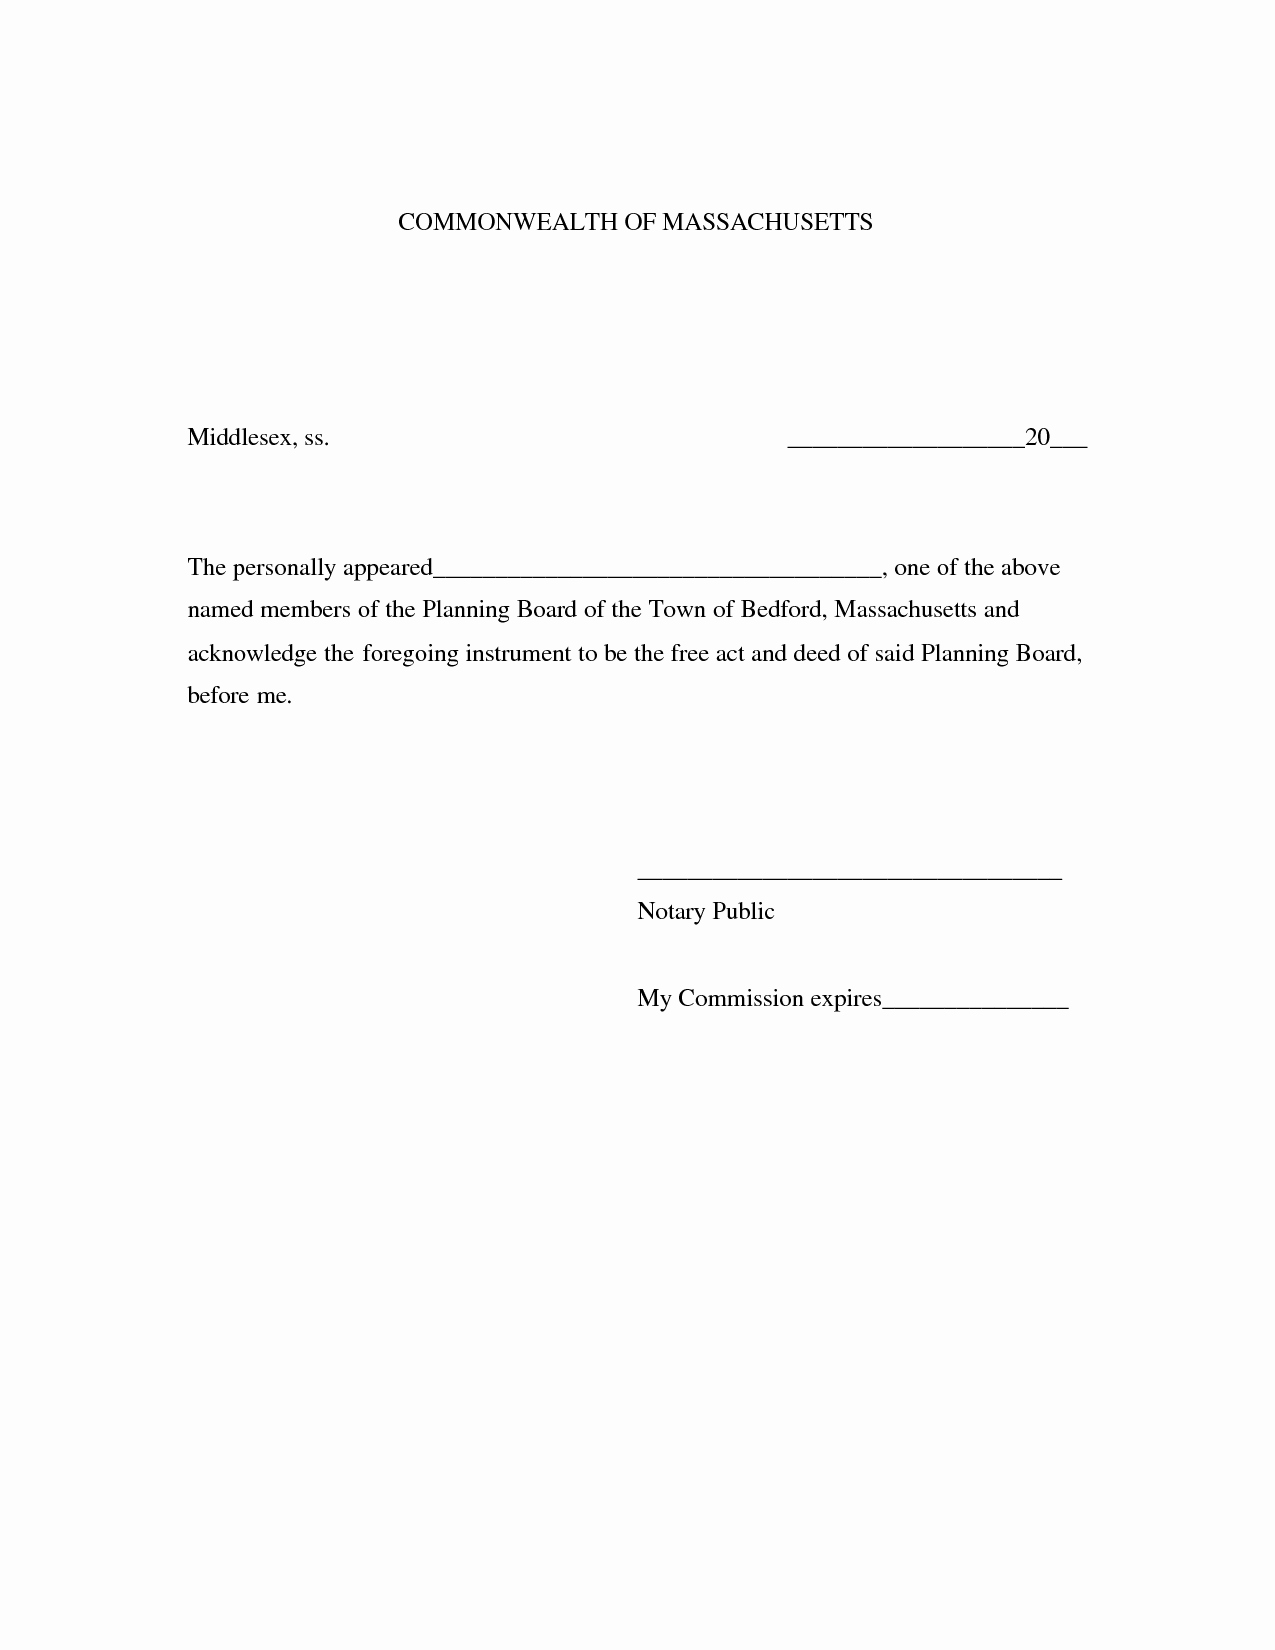 Notary Public Signature Line Template Beautiful Best S Of Notary forms Product Sample Notary forms